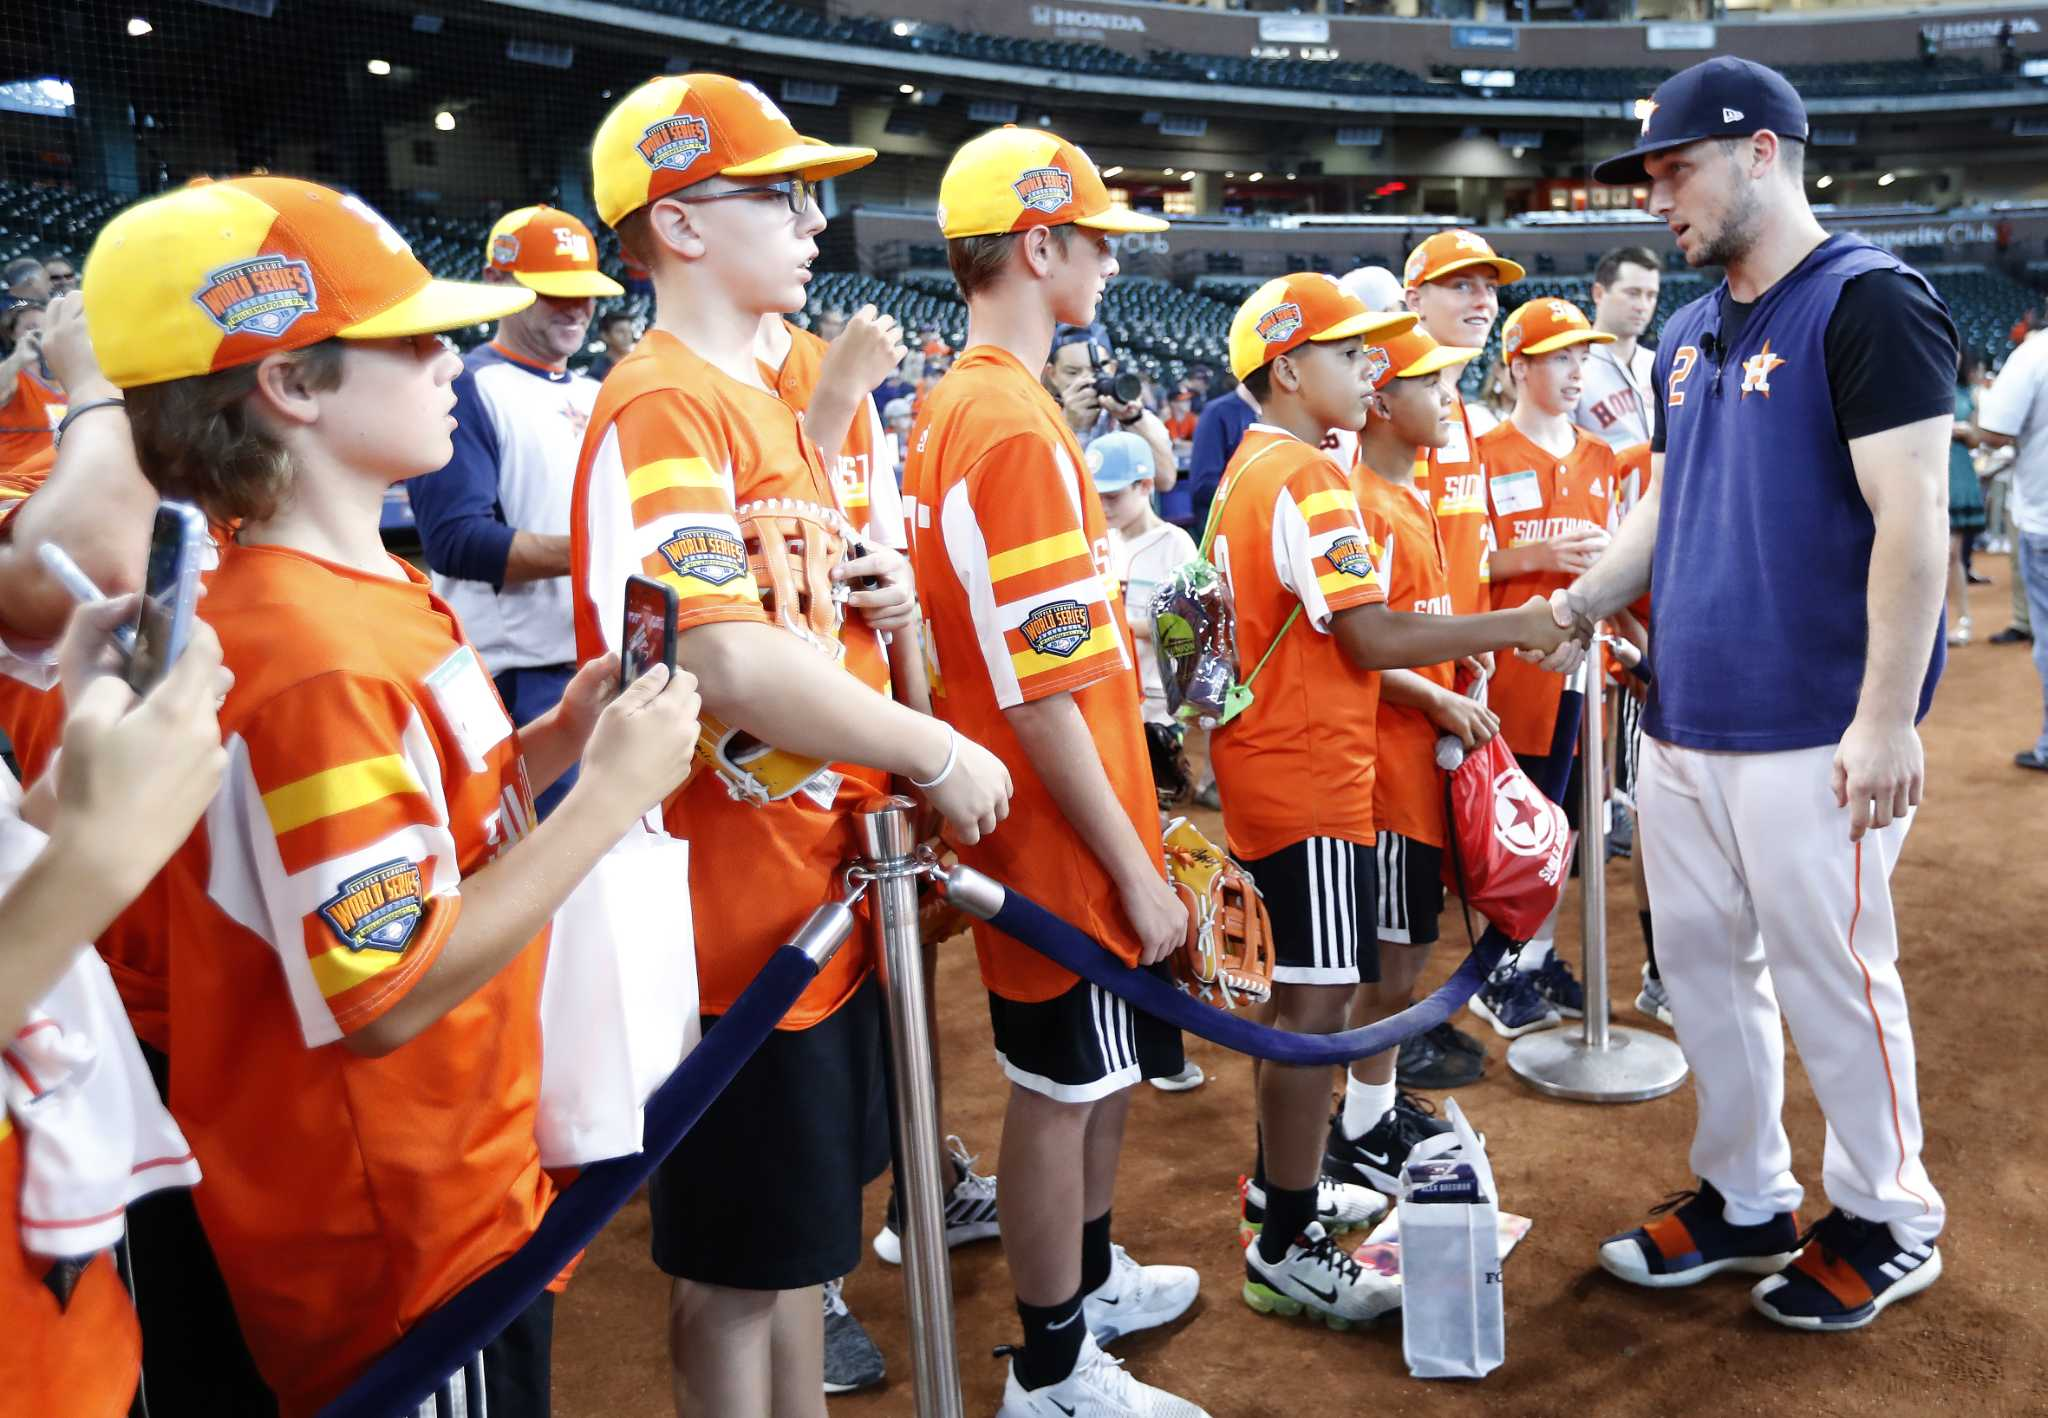 Astros' Alex Bregman hosts Little League World Series champion team from Louisiana